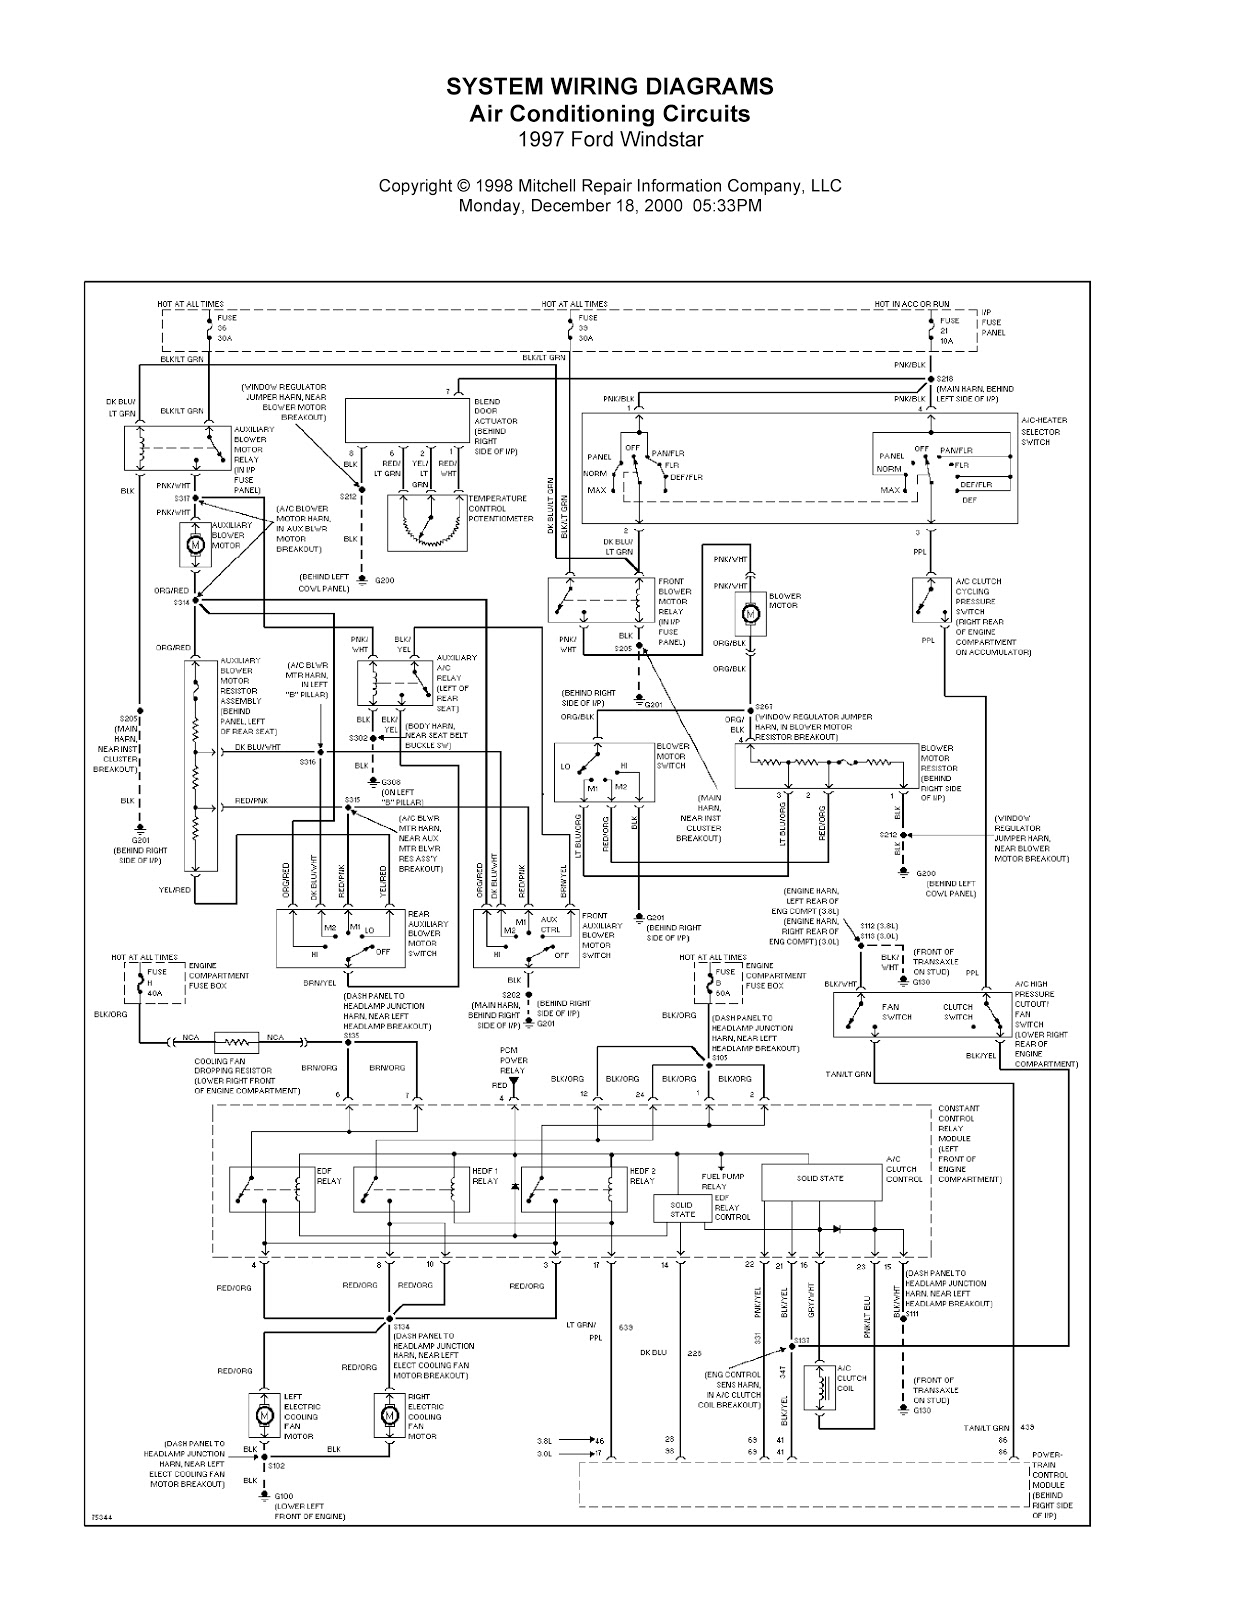 0001 1997 ford windstar complete system wiring diagrams wiring 2000 ford windstar radio wiring diagram at webbmarketing.co